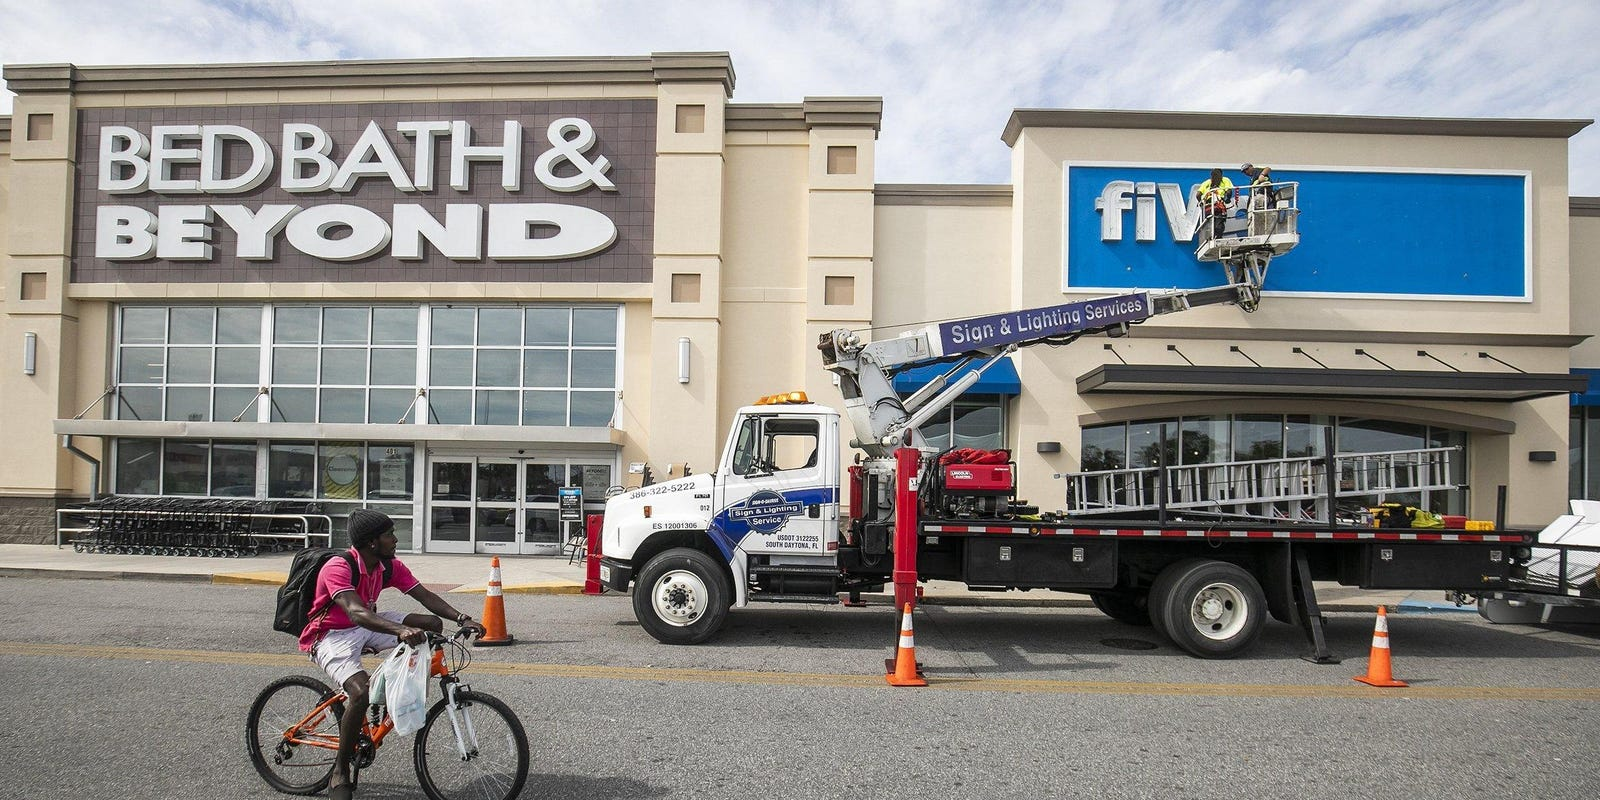 Bed Bath & Beyond to eliminate 2,800 jobs 'effective immediately'